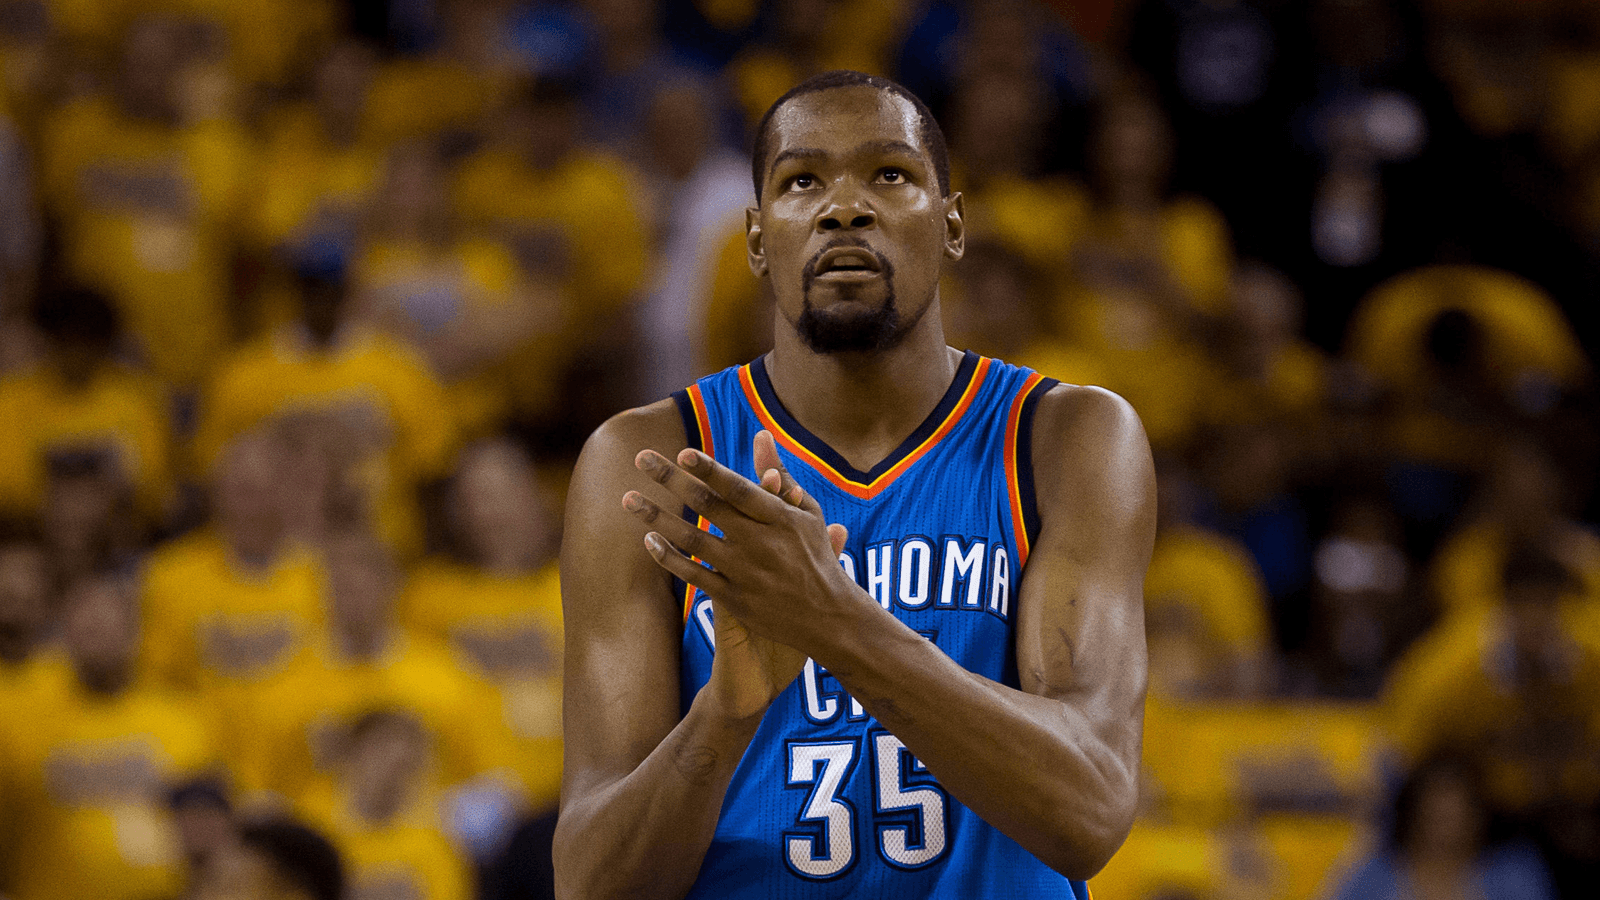 Want Kevin Durant on the Wizards? Root for Thunder over Warriors